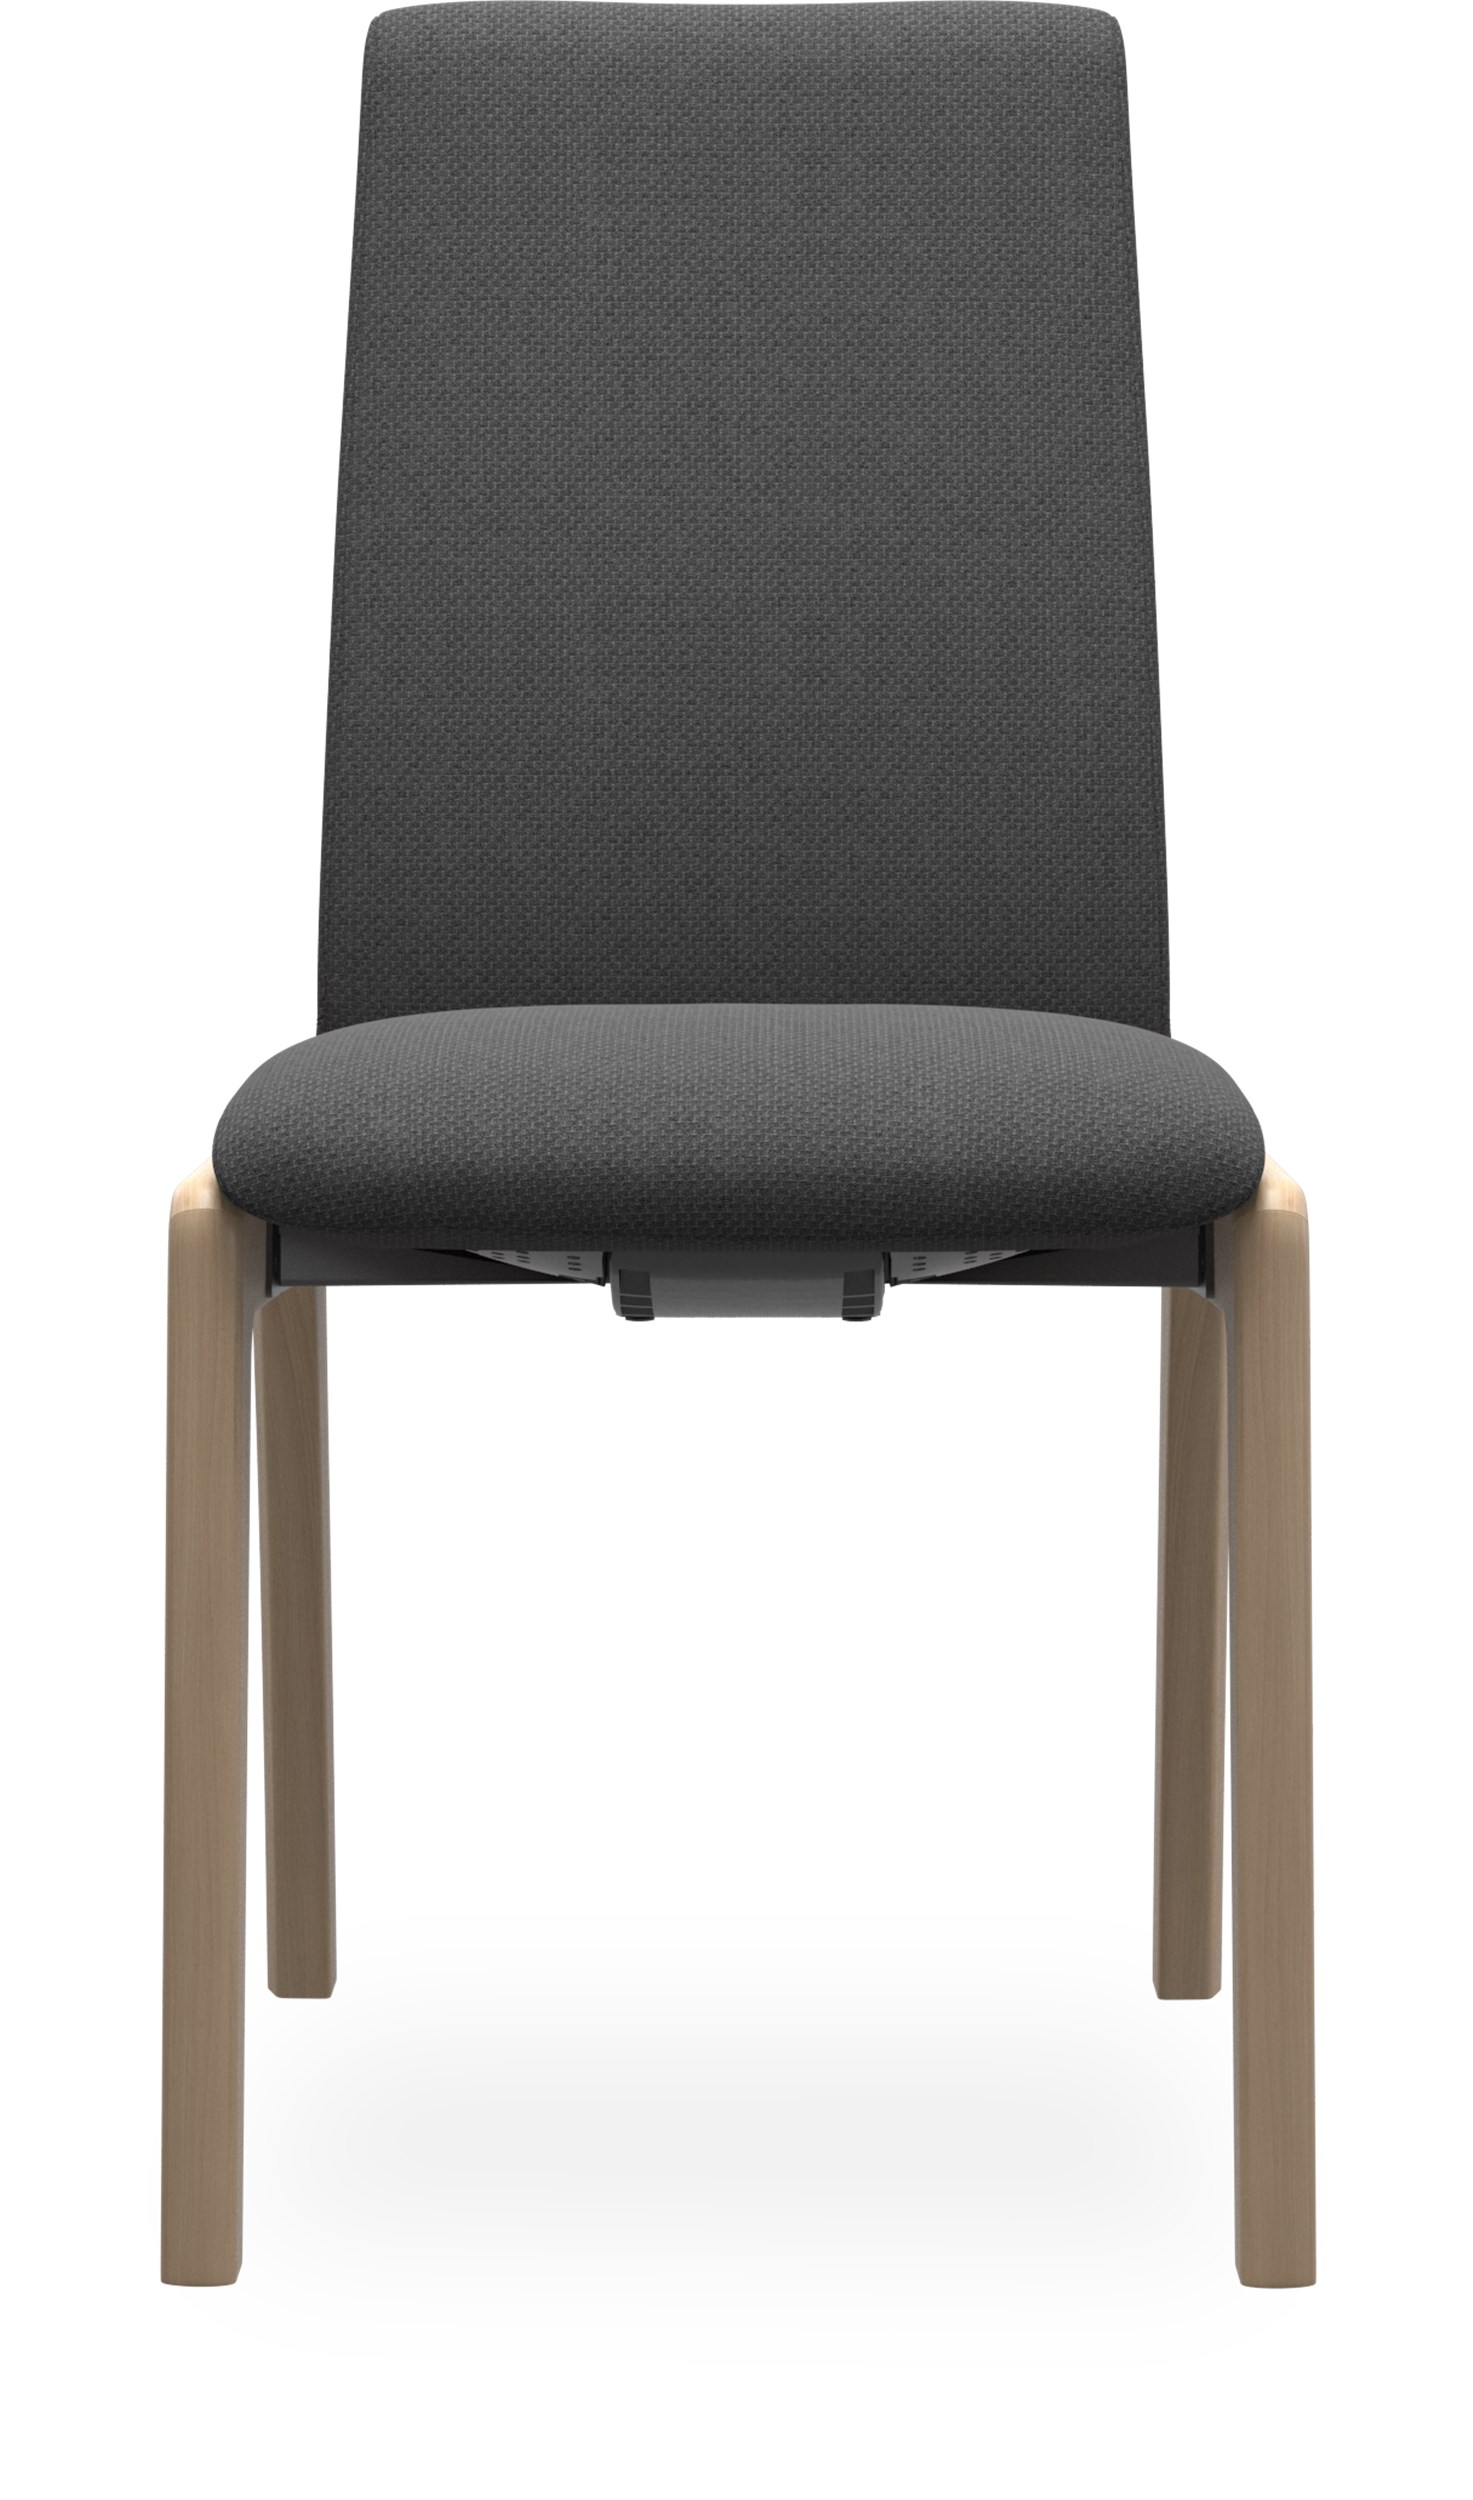 Stressless M D100 Laurel low Spisebordsstol - Ivy 593-16 Dark Grey stof og stel i lakeret, massiv eg